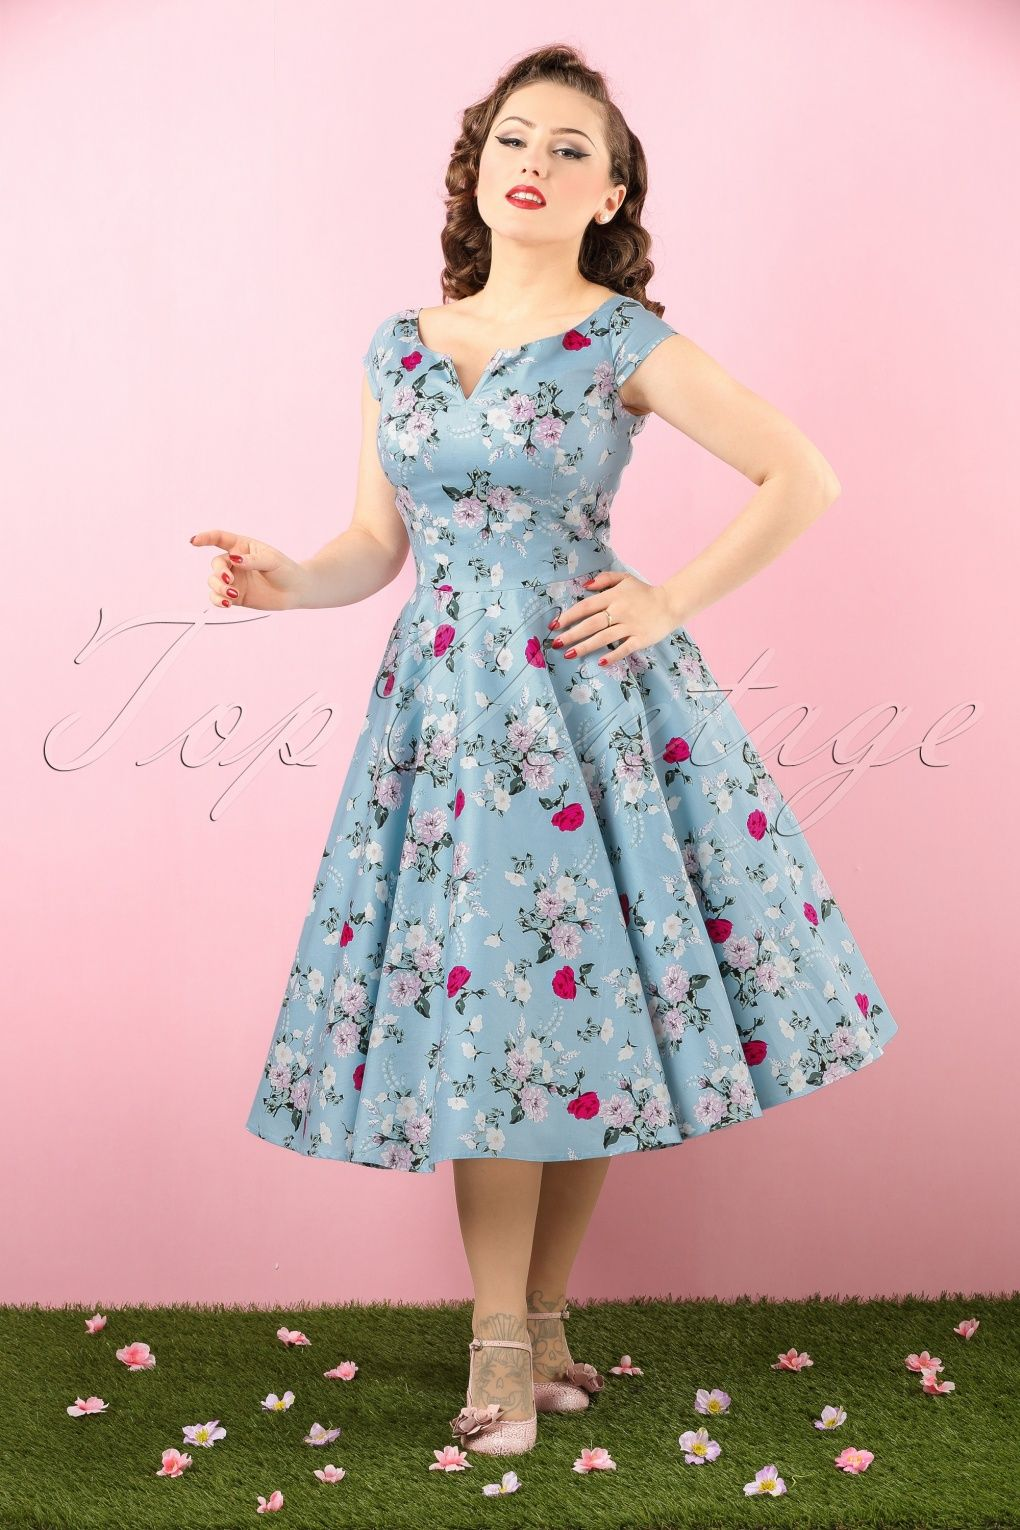 9582c40d1afc You re totally summer-proof when wearing this 50s Belinda Floral Dress!With  her elegant boat neck